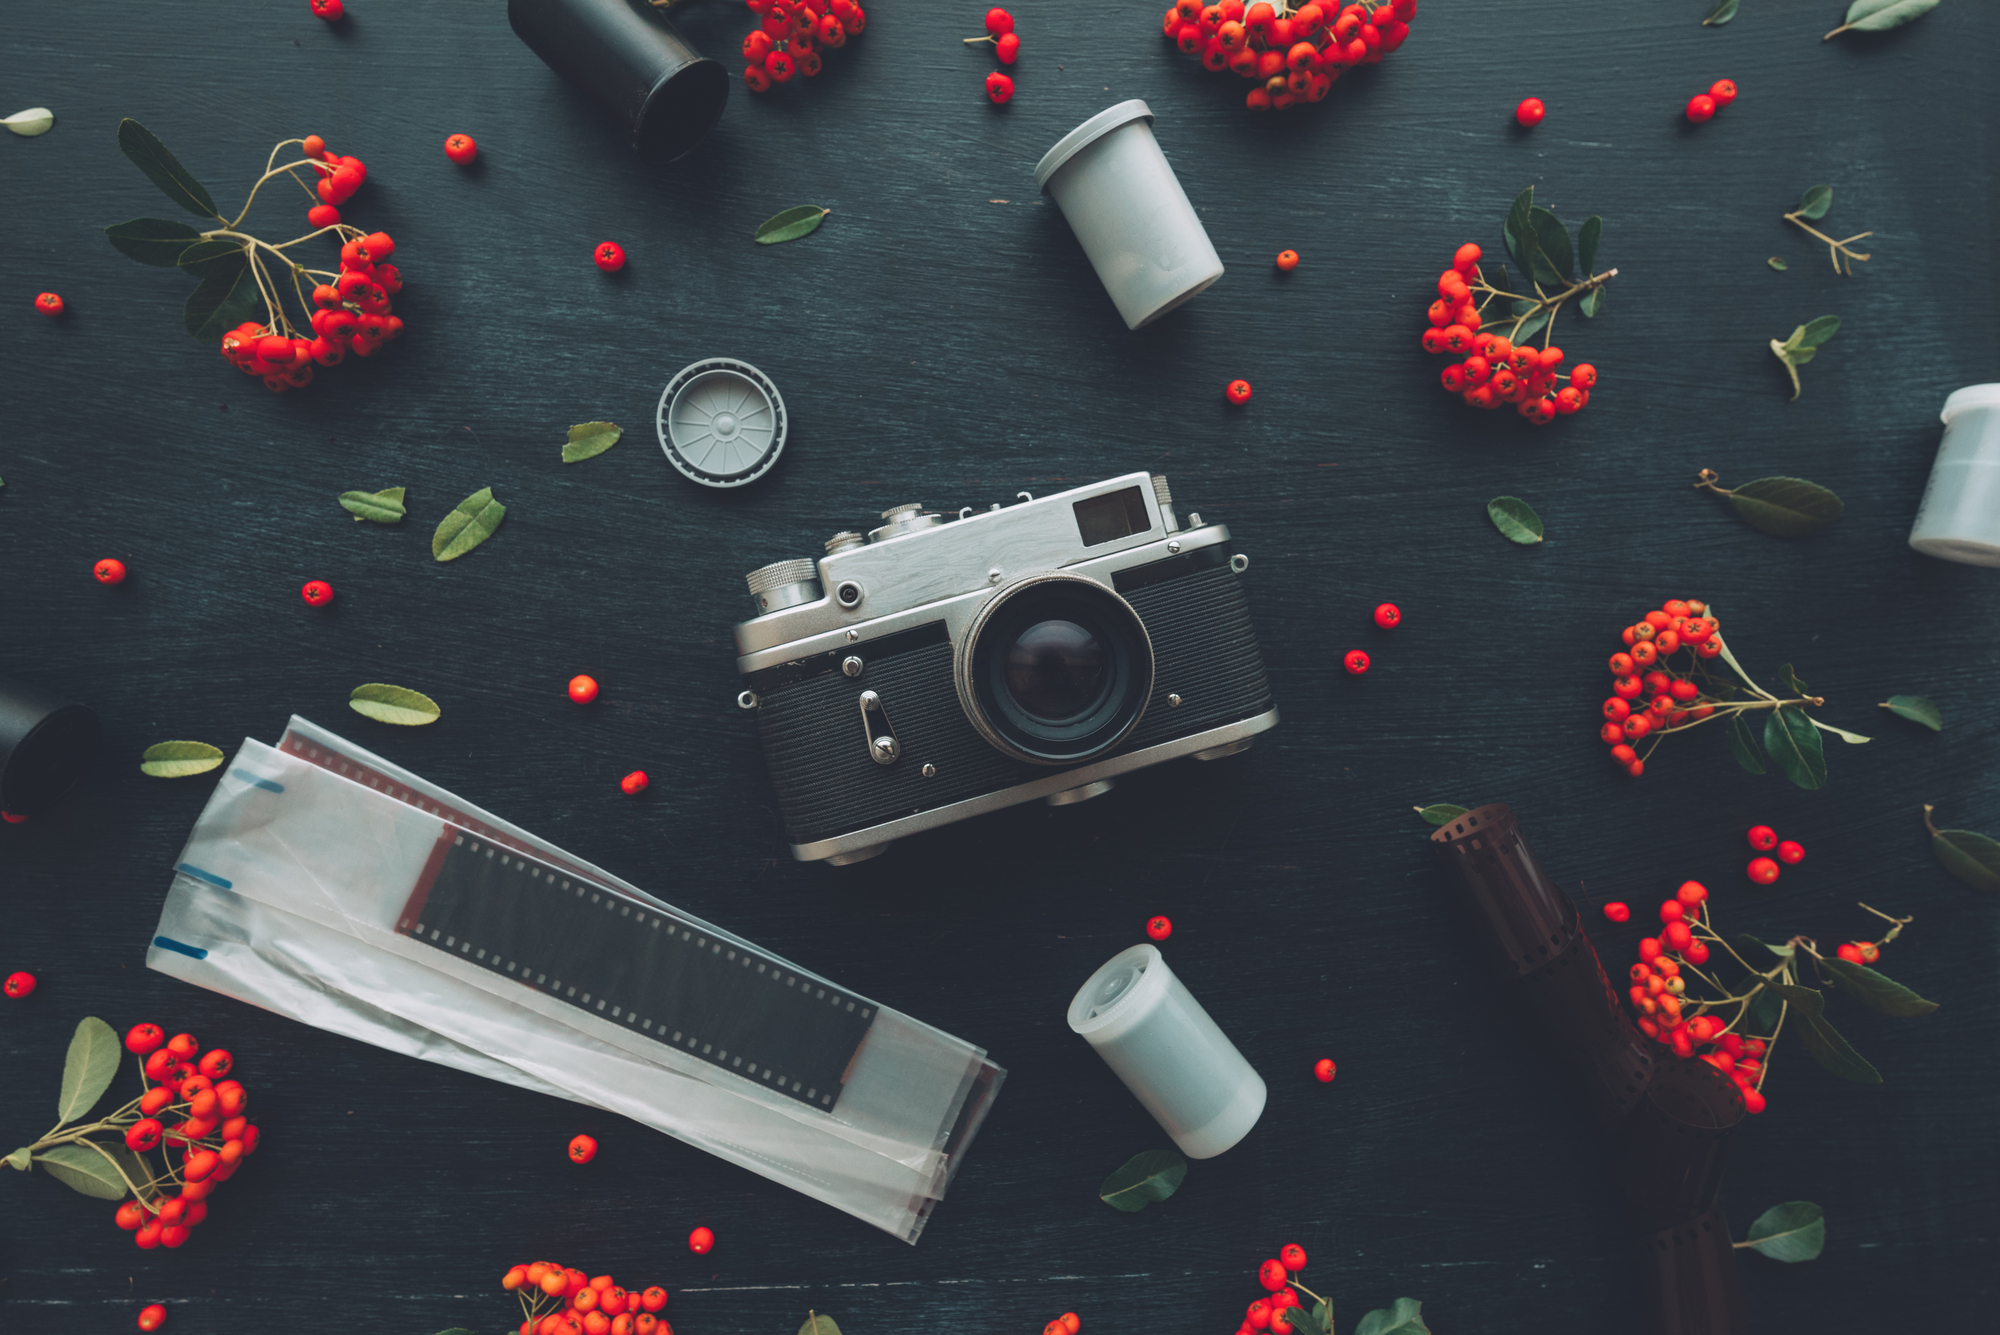 Photography Quotes to Inspire Your Work